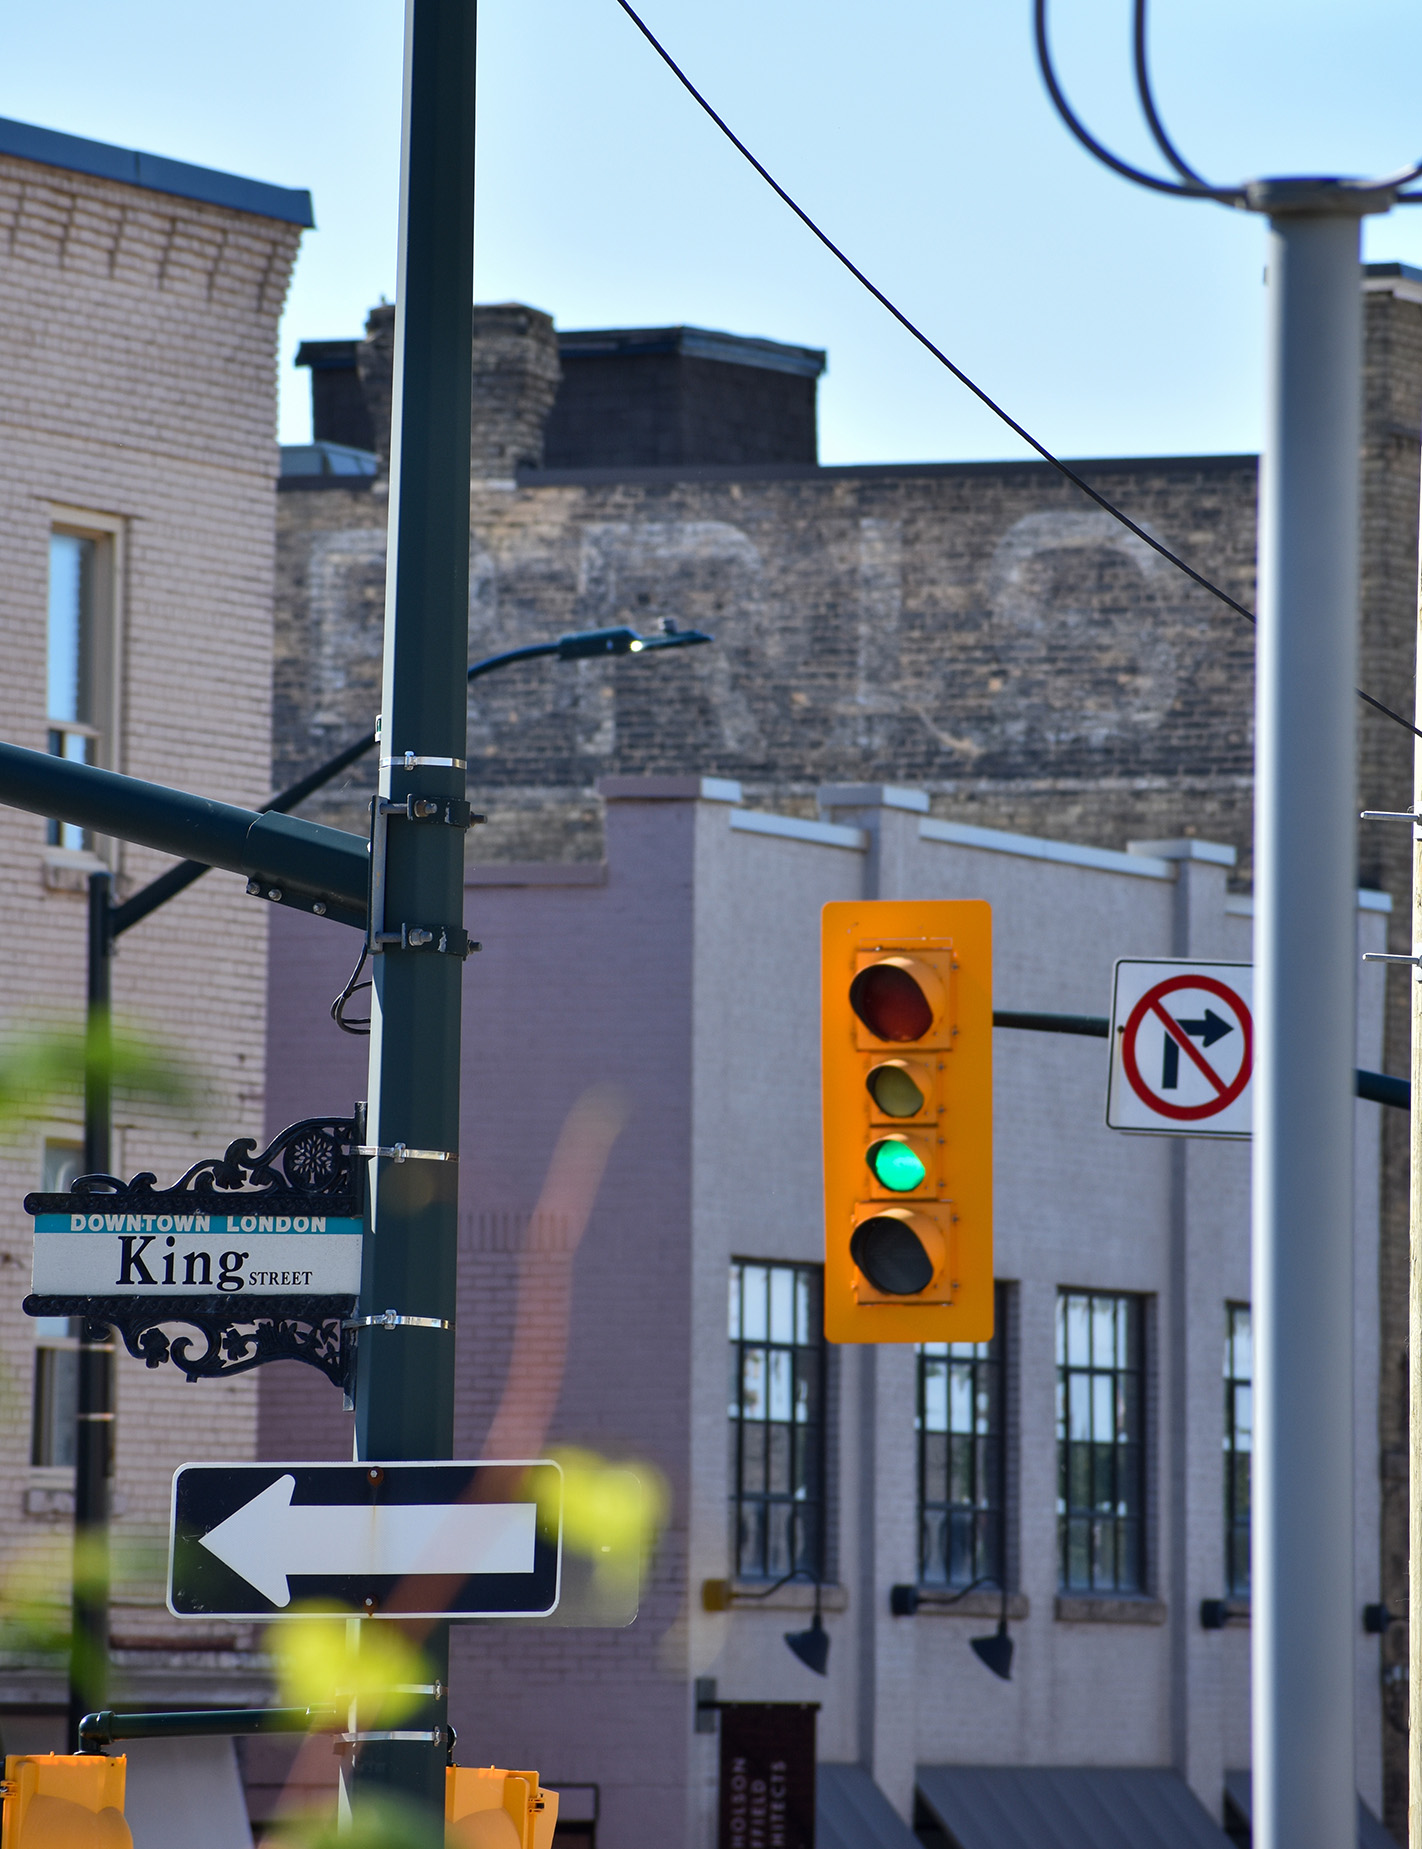 An intersection with a traffic light and street sign that says King. In the background are brick buildings, one has writing on it.